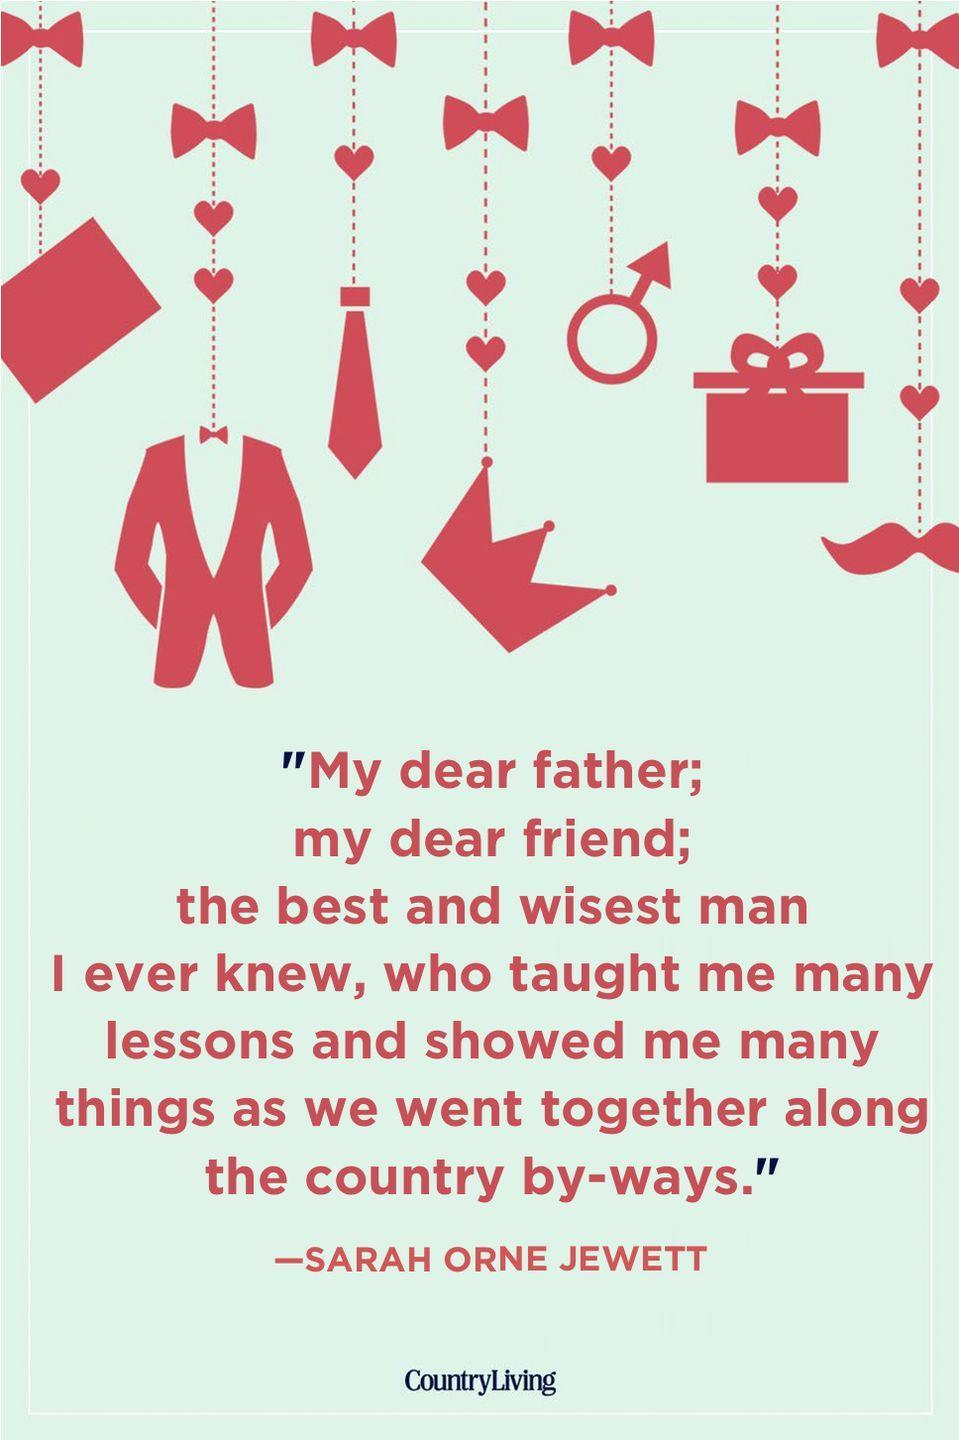 "<p>""My dear father; my dear friend; the best and wisest man I ever knew, who taught me many lessons and showed me many things as we went together along the country by-ways.""</p>"